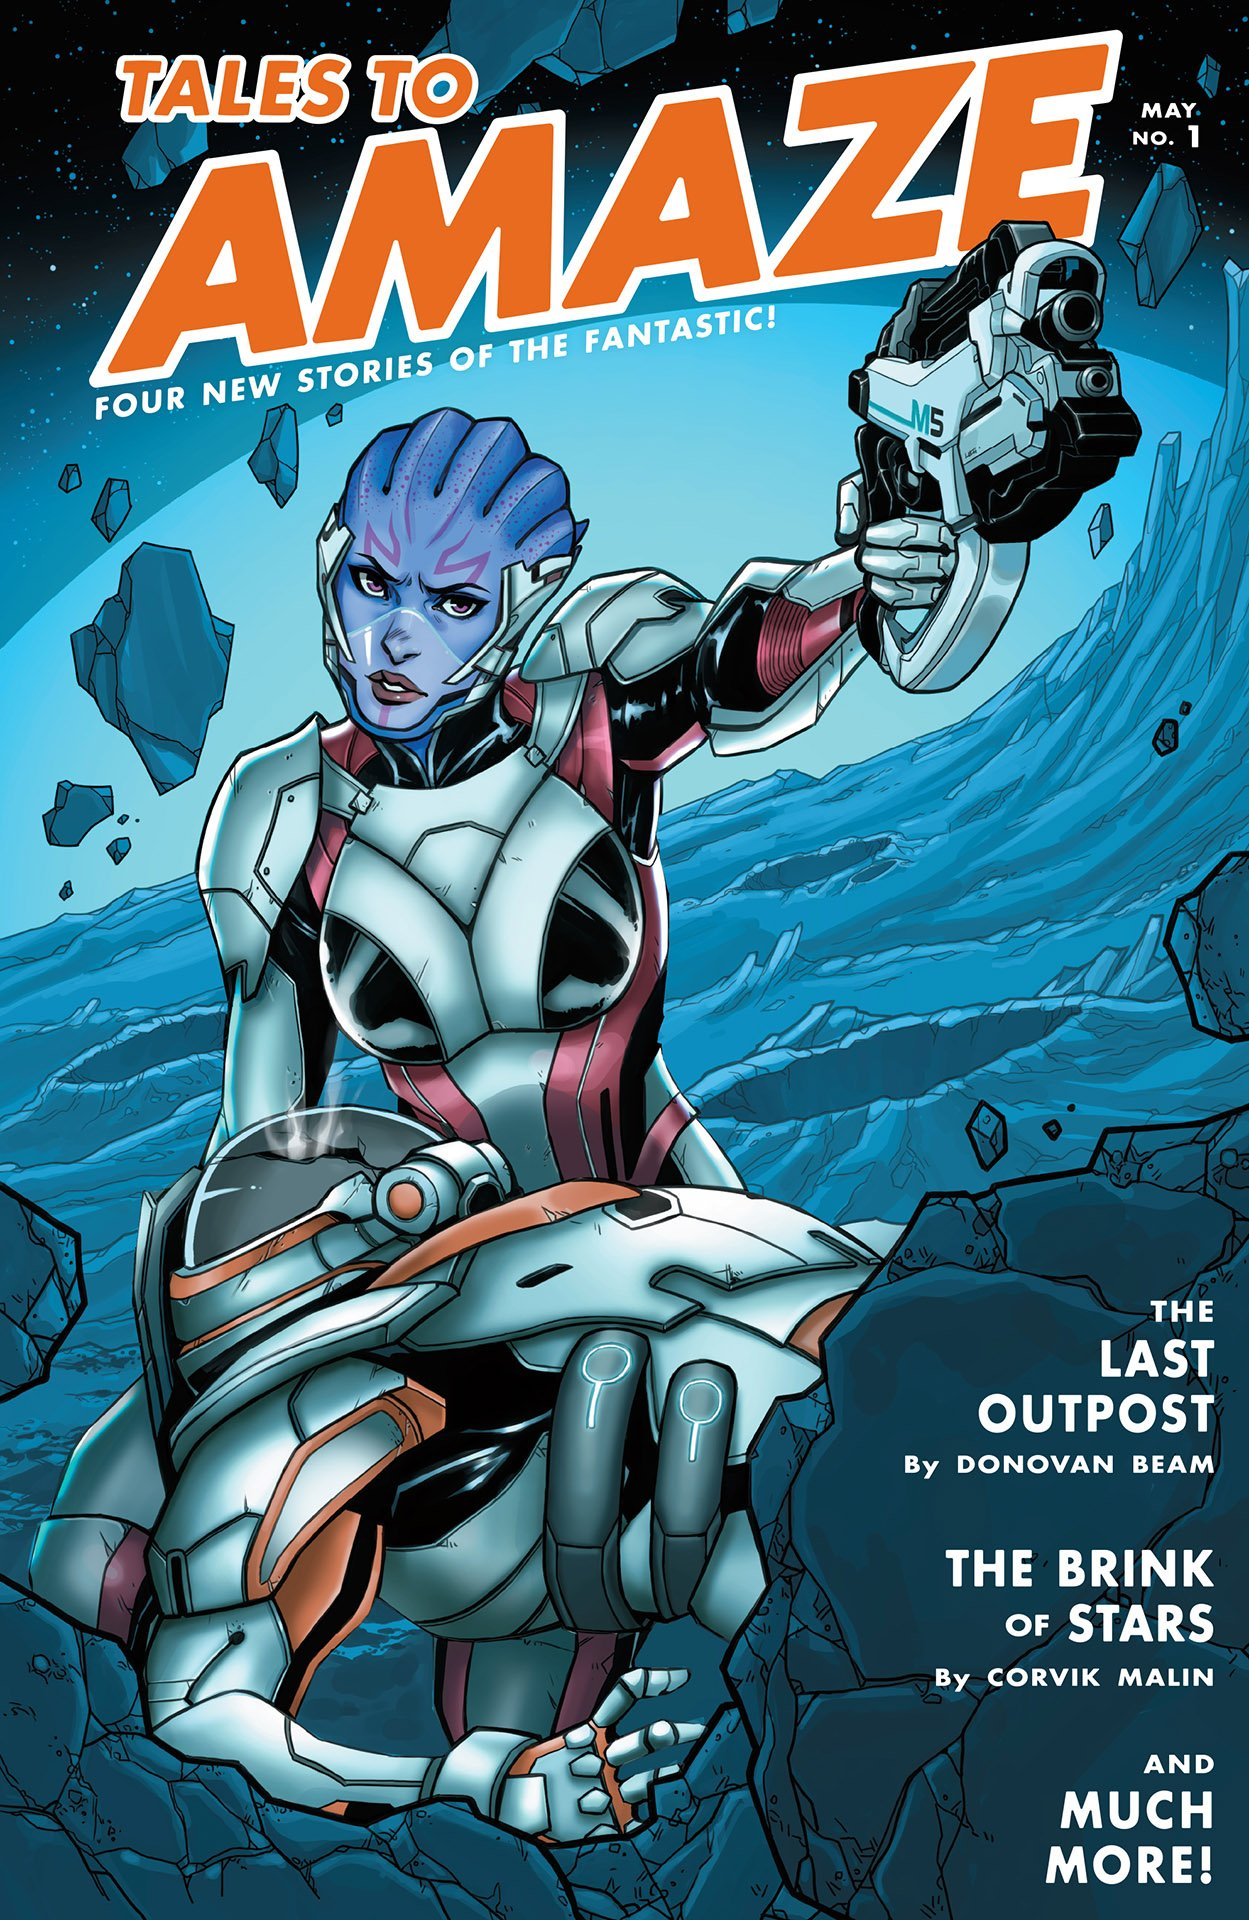 Mass Effect - Discovery 001 (cover b) (May 2017)